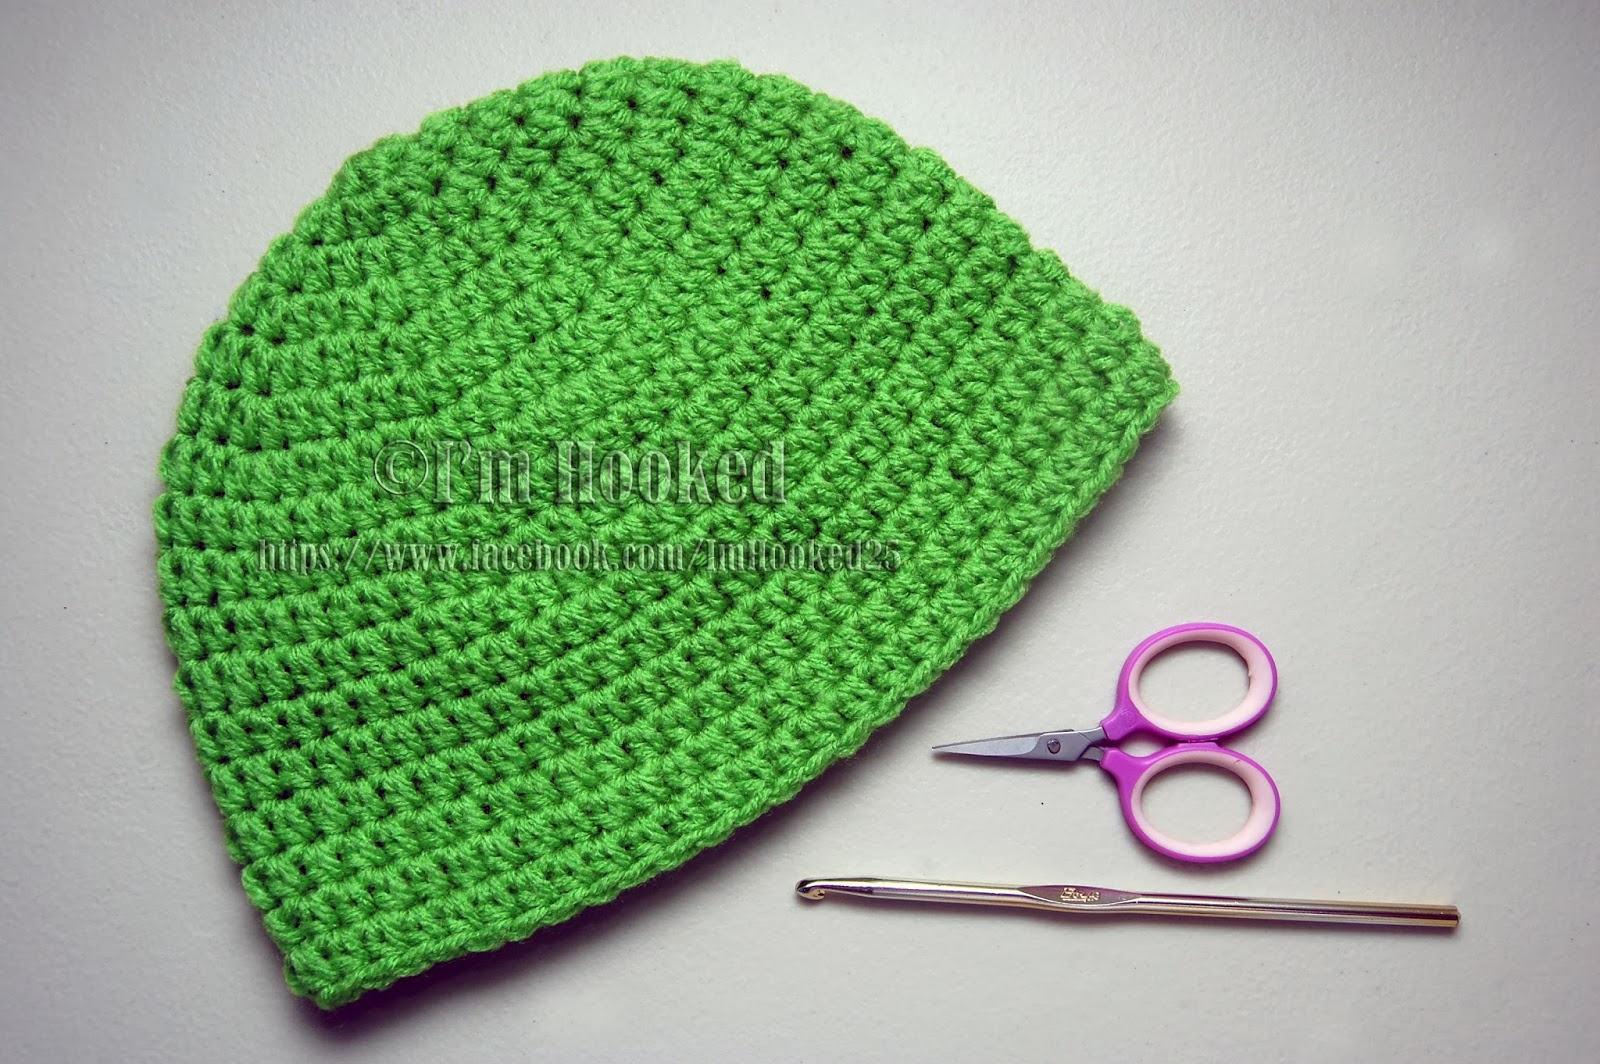 Crocheting Hdc : Free Crochet Pattern: Basic Beanie (Half Double Crochet)